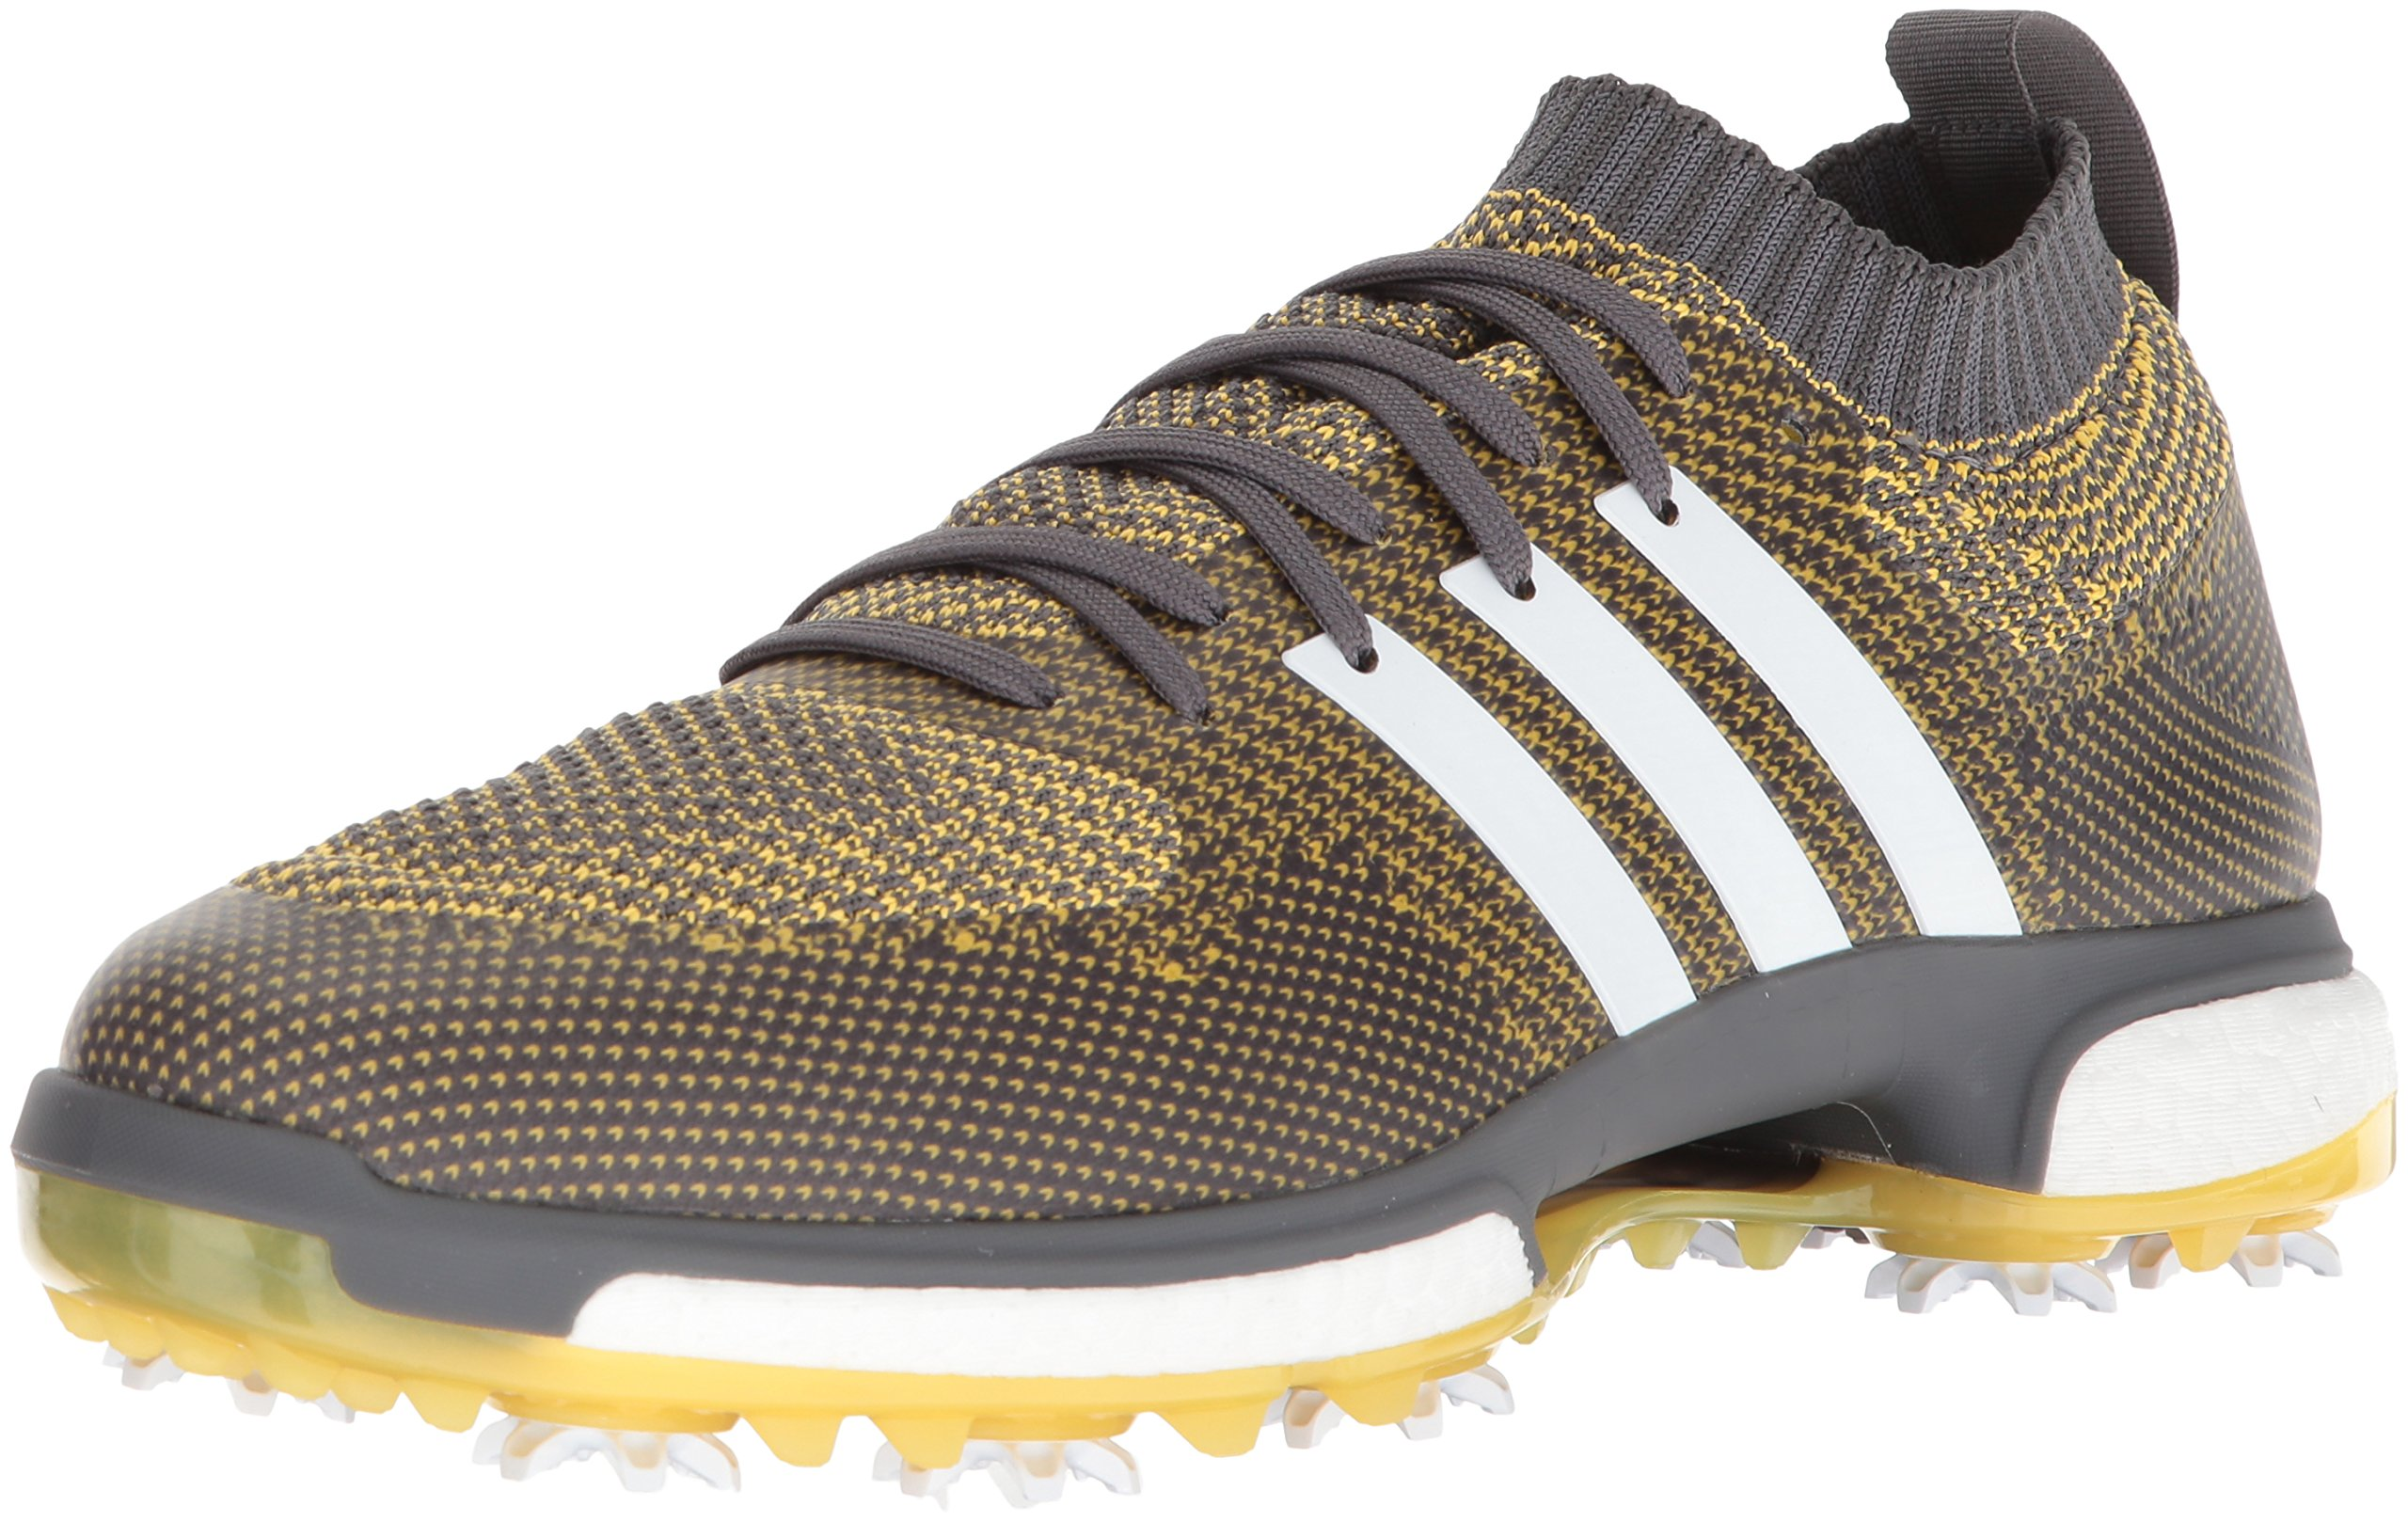 adidas Men's TOUR360 Knit Golf Shoe, Grey Five FTWR White/EQT Yellow, 15 Medium US by adidas